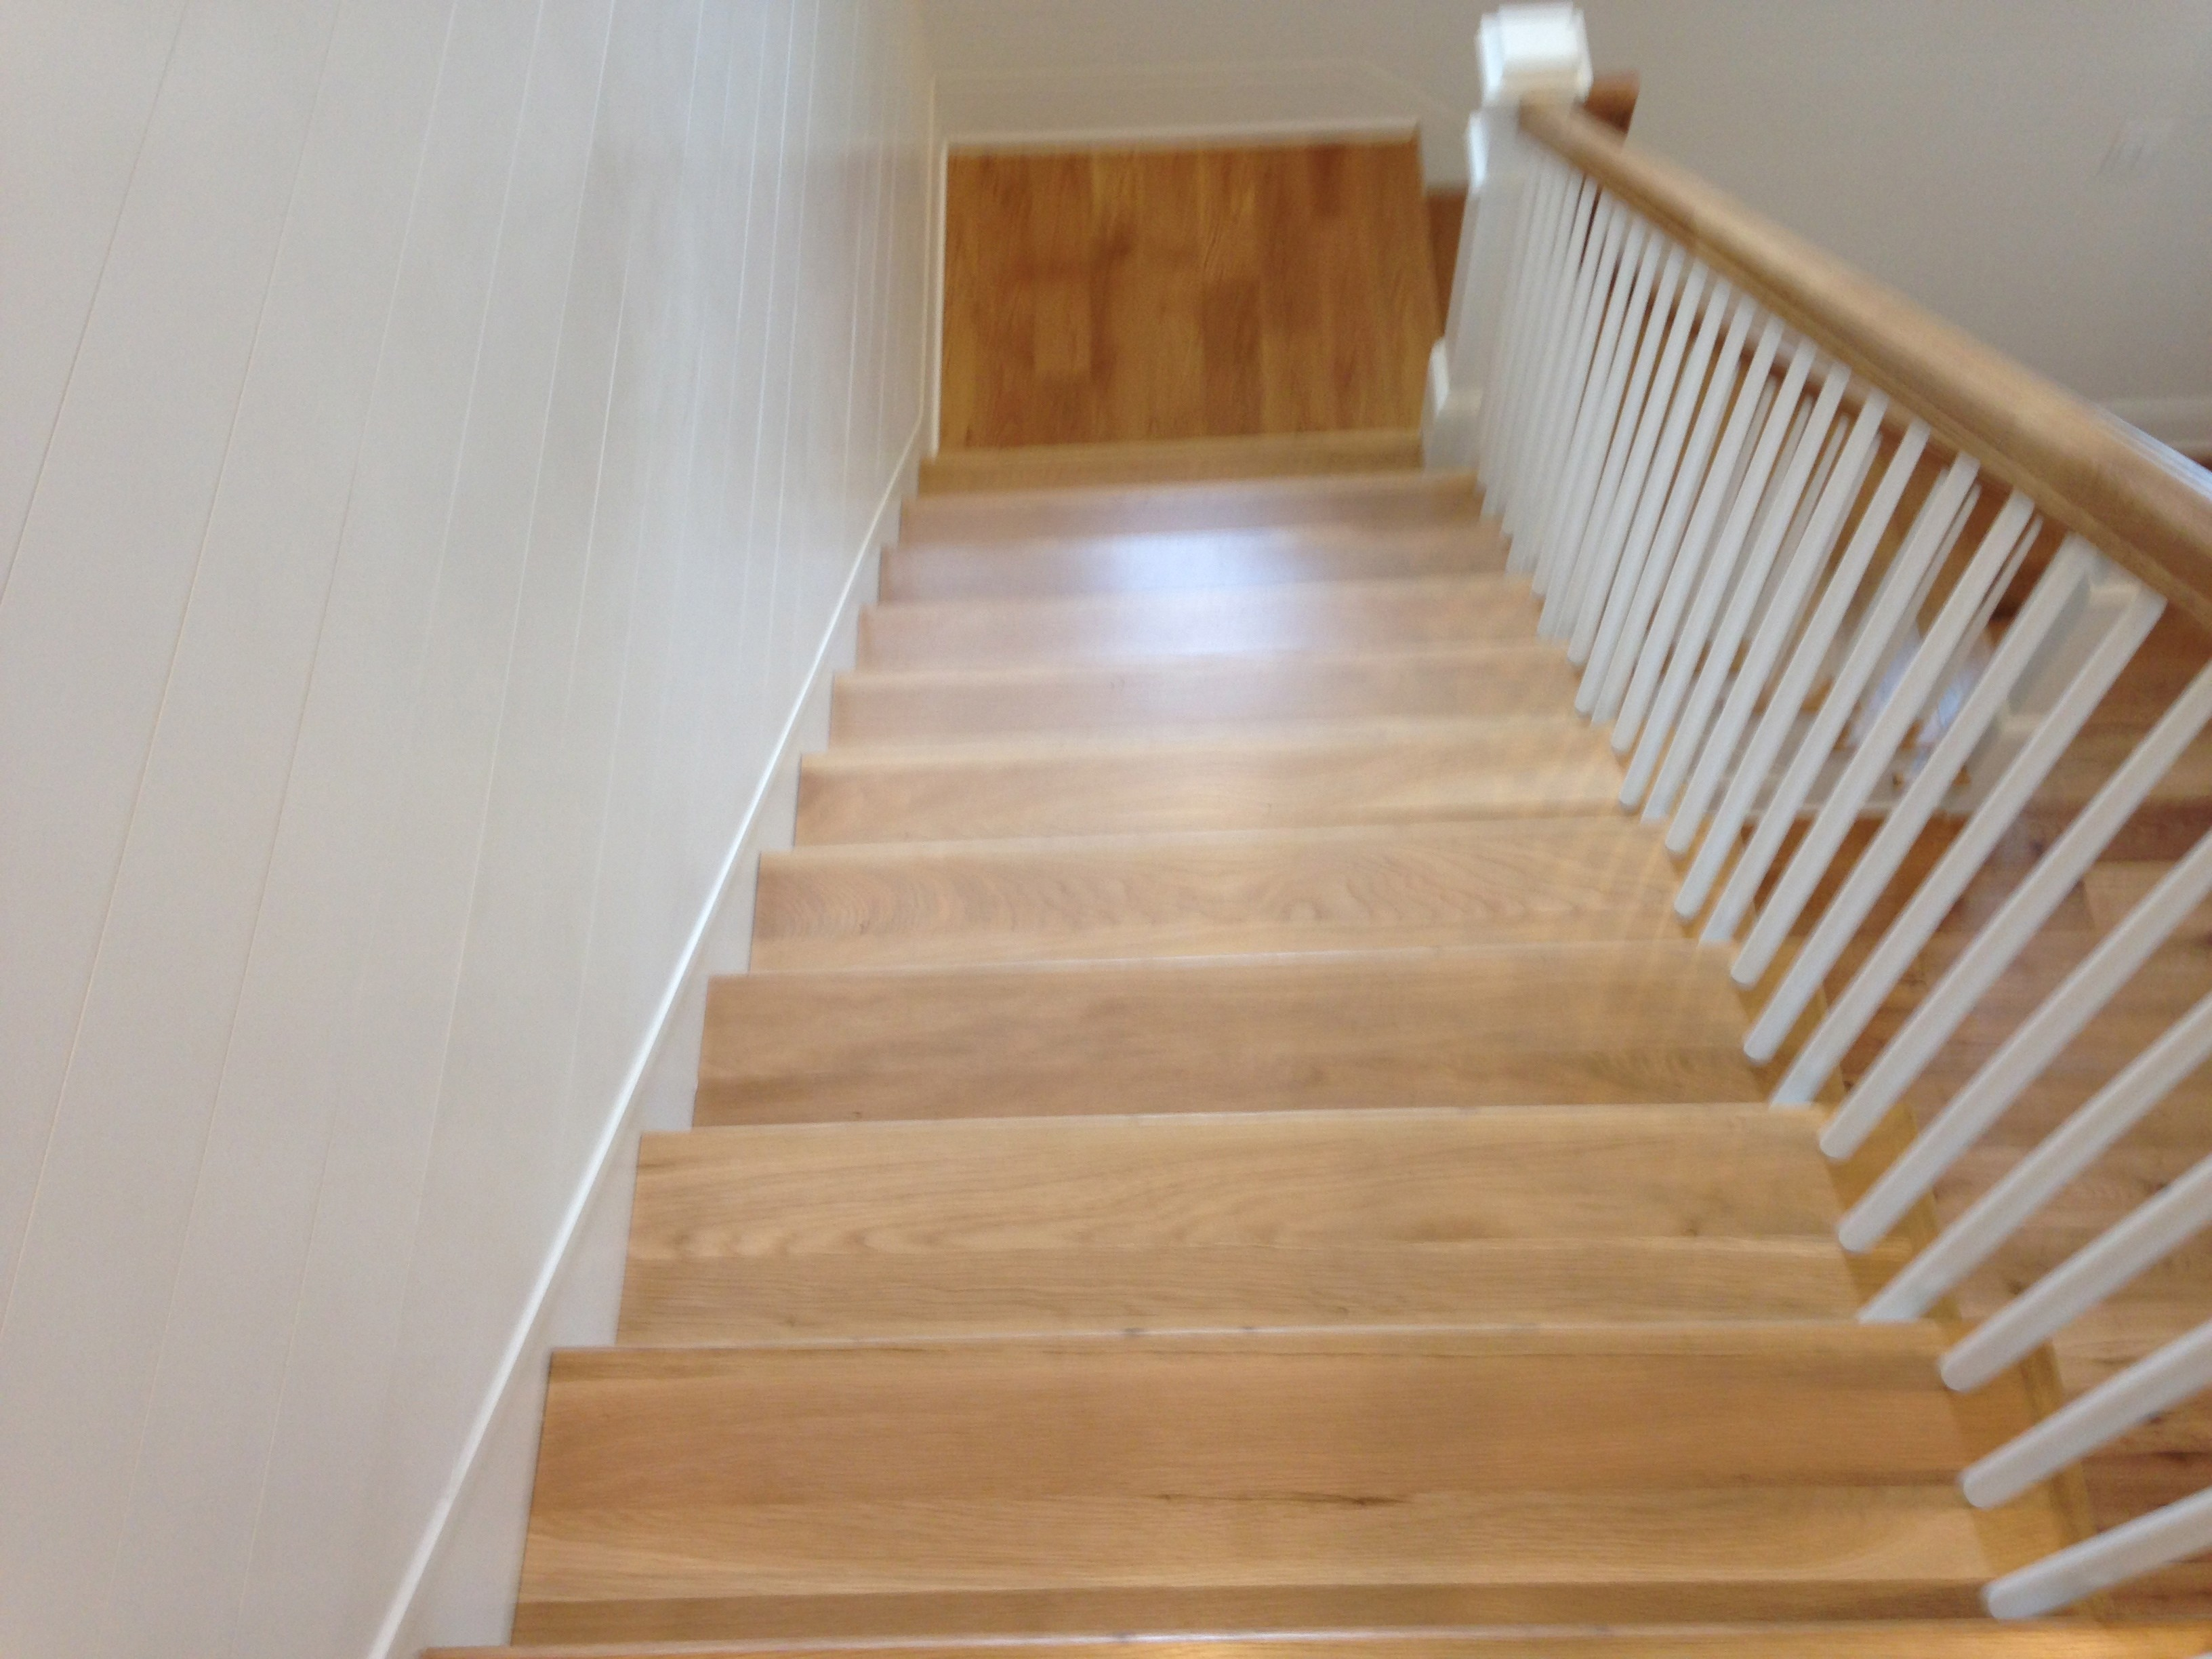 Quality Wood Flooring Tile And Stone In Jacksonville Florida